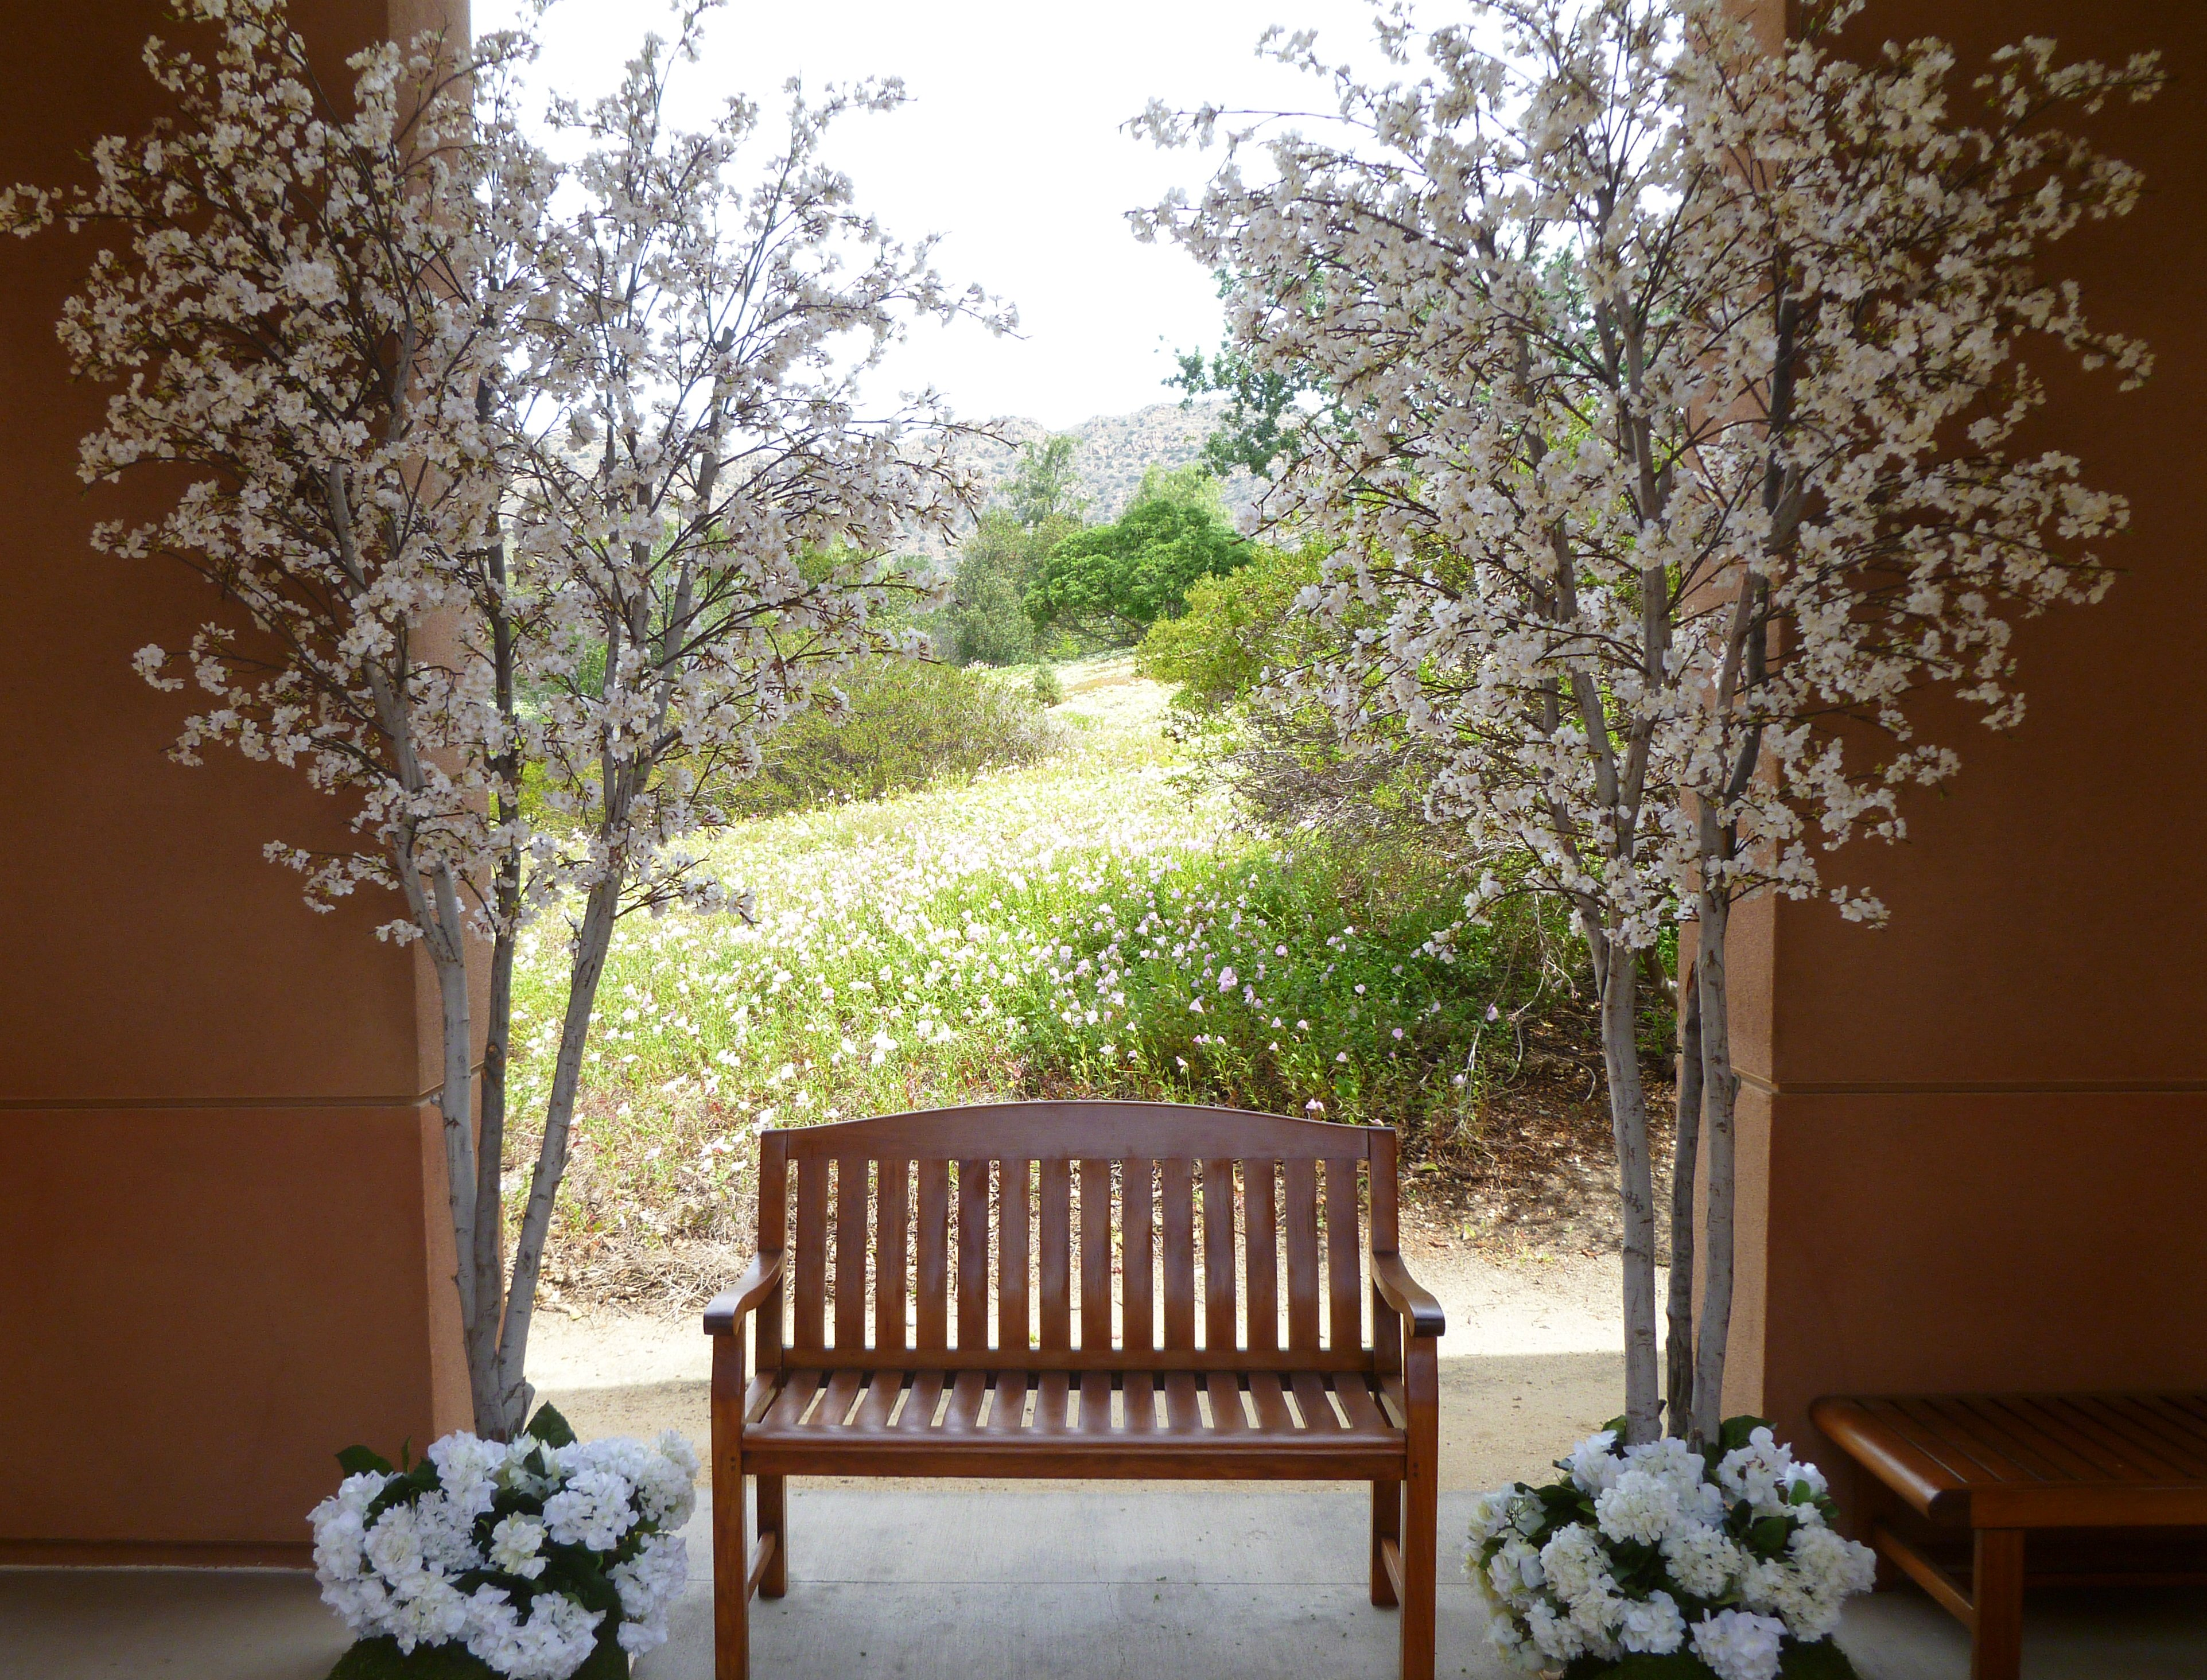 Tree Rental for Weddings Events, Artificial Plants, Faux Trees